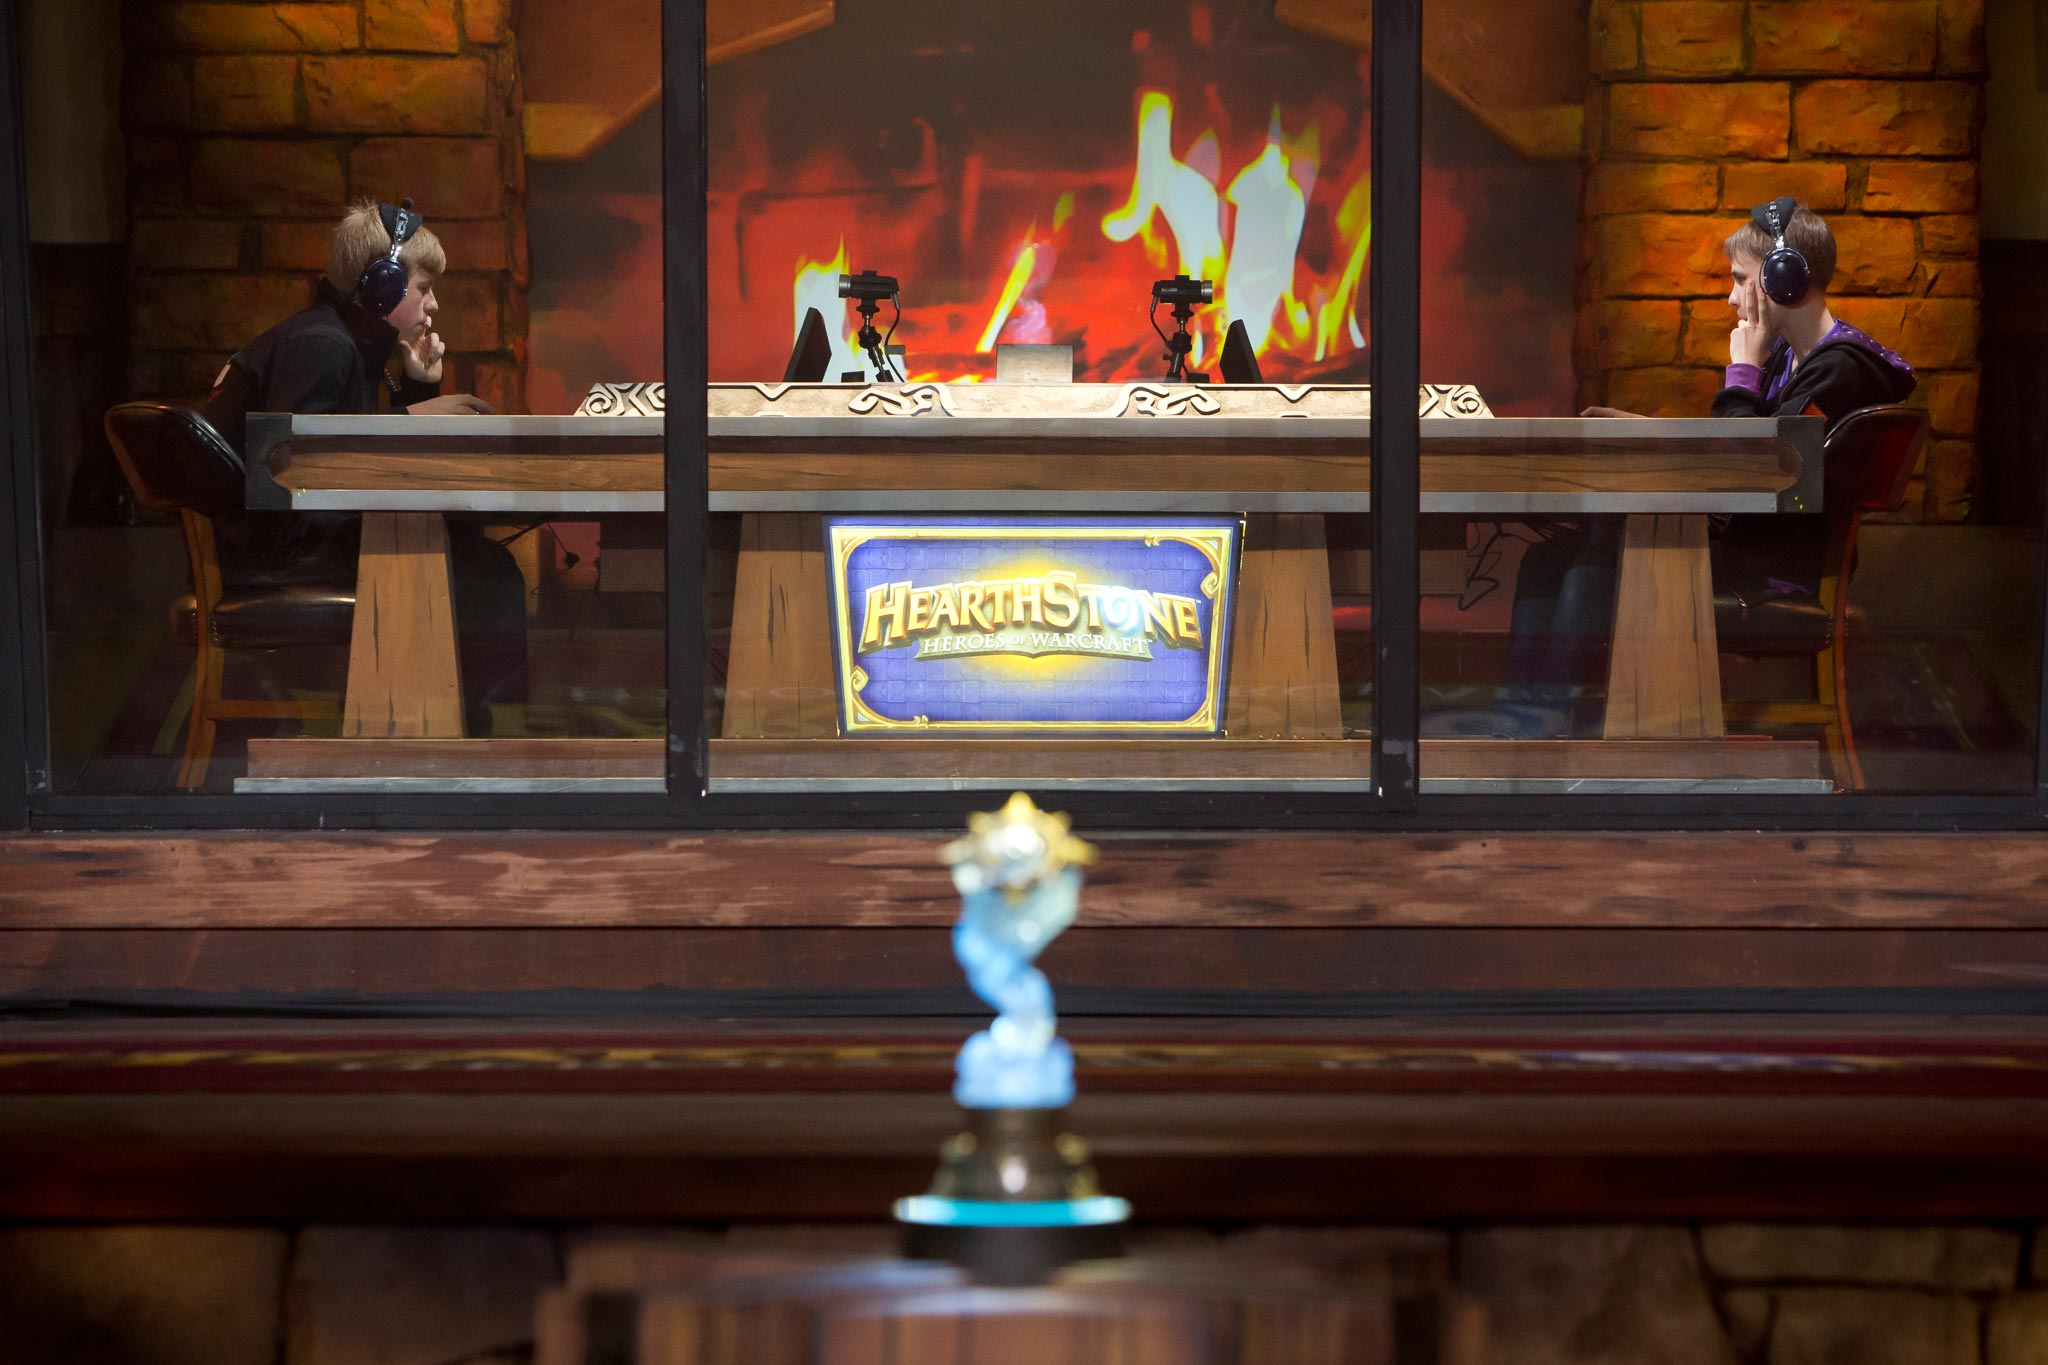 Tensions rise as games of Hearthstone swing back and forth